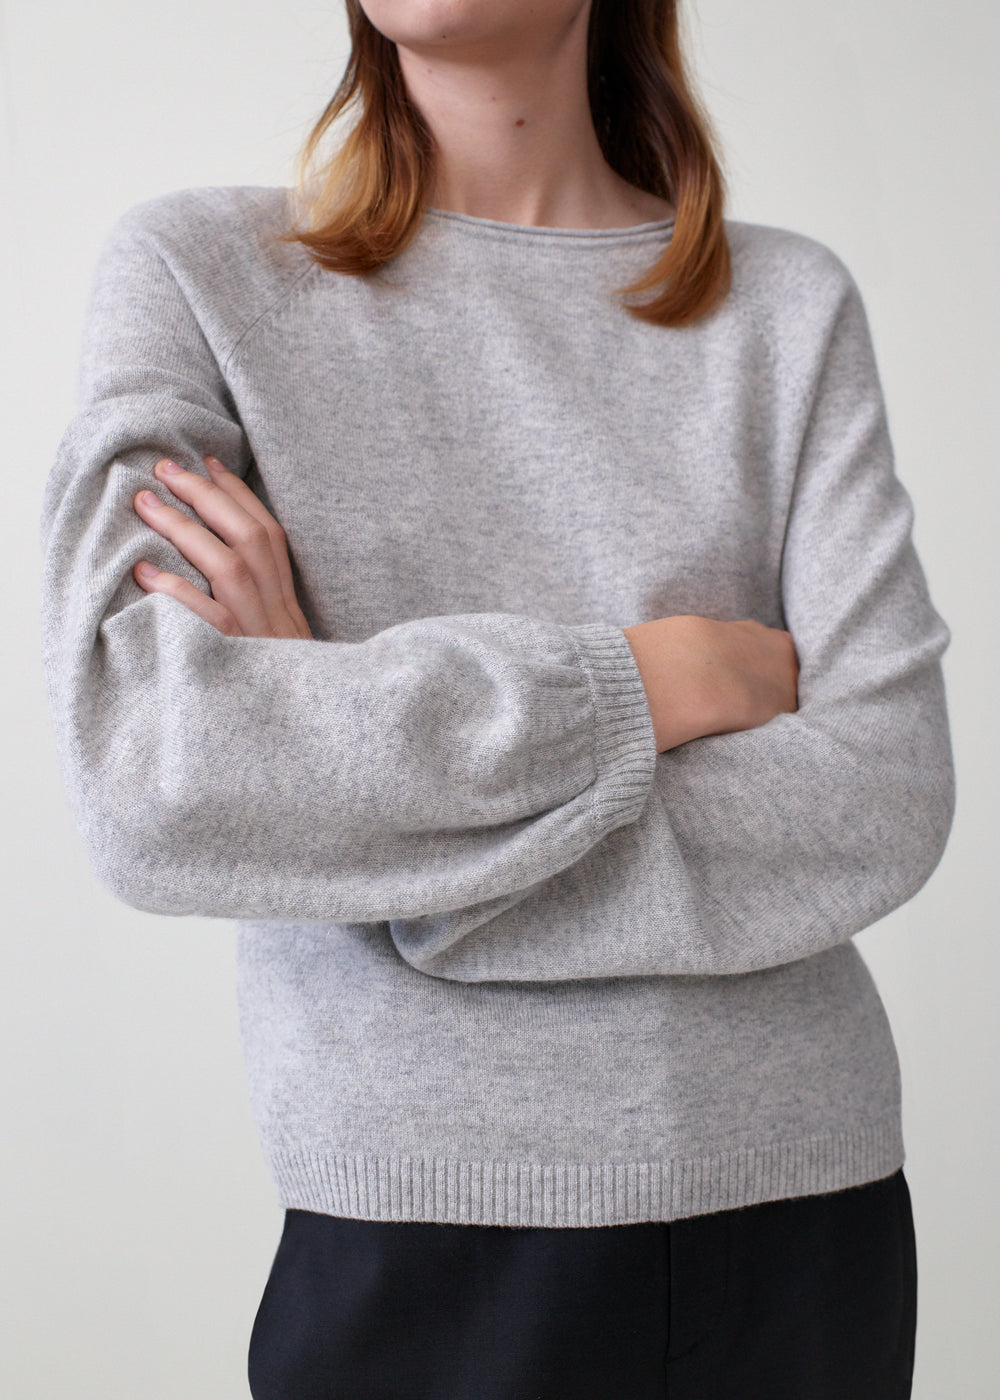 Raglan Peasant Sleeve Sweater in Cashmere - Brown in Light Grey by Co Collections